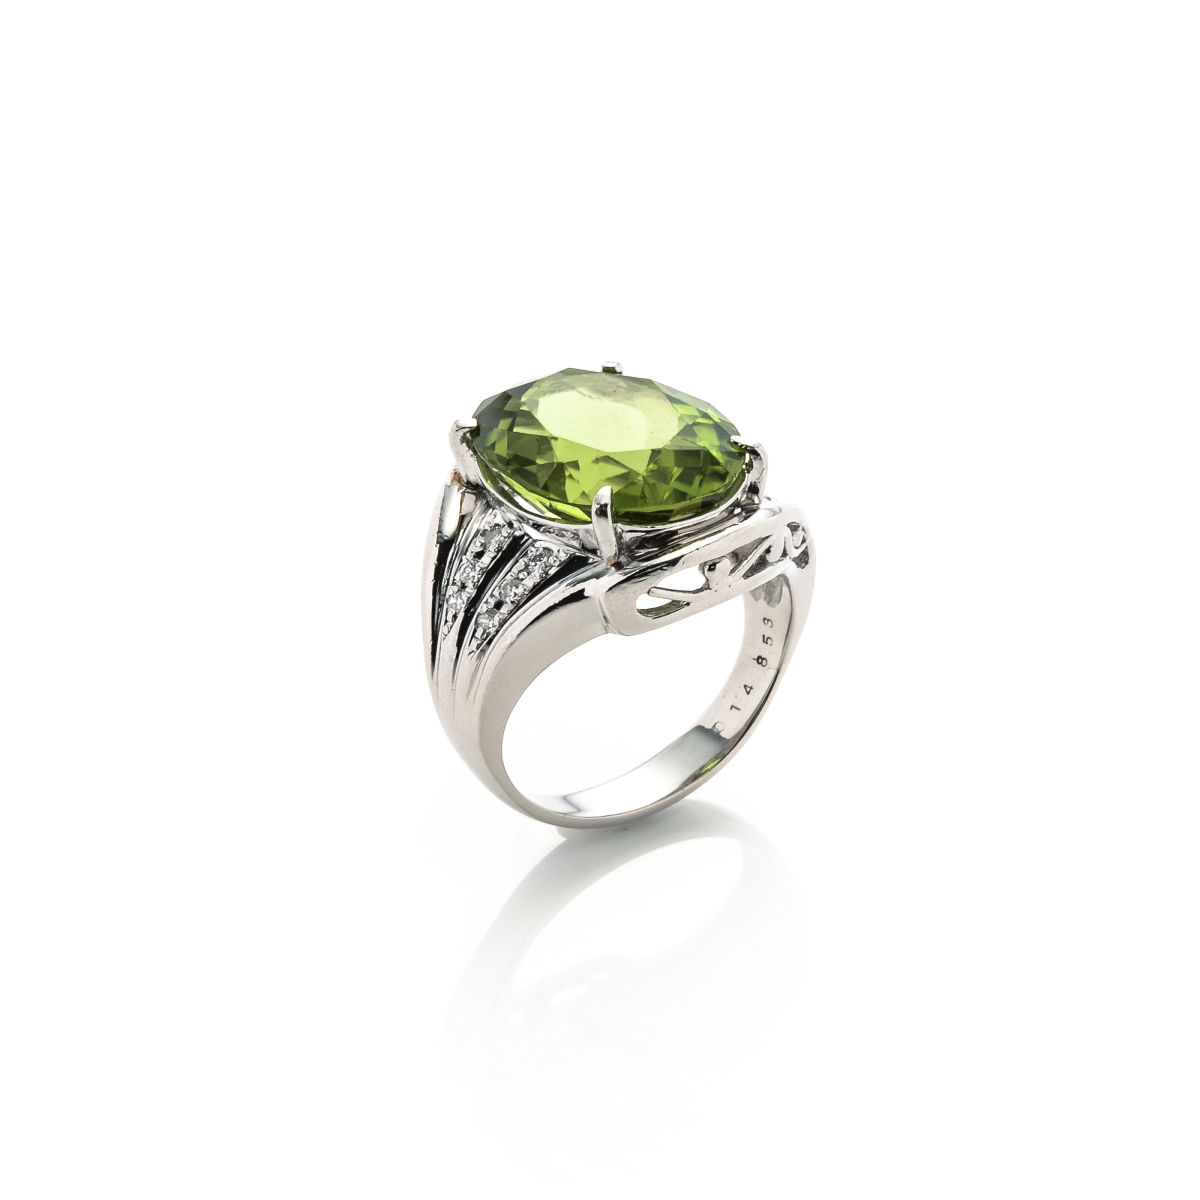 sterling silver love green womans stones rings band gothic medieval engagement ladies princess with ring peridot wedding